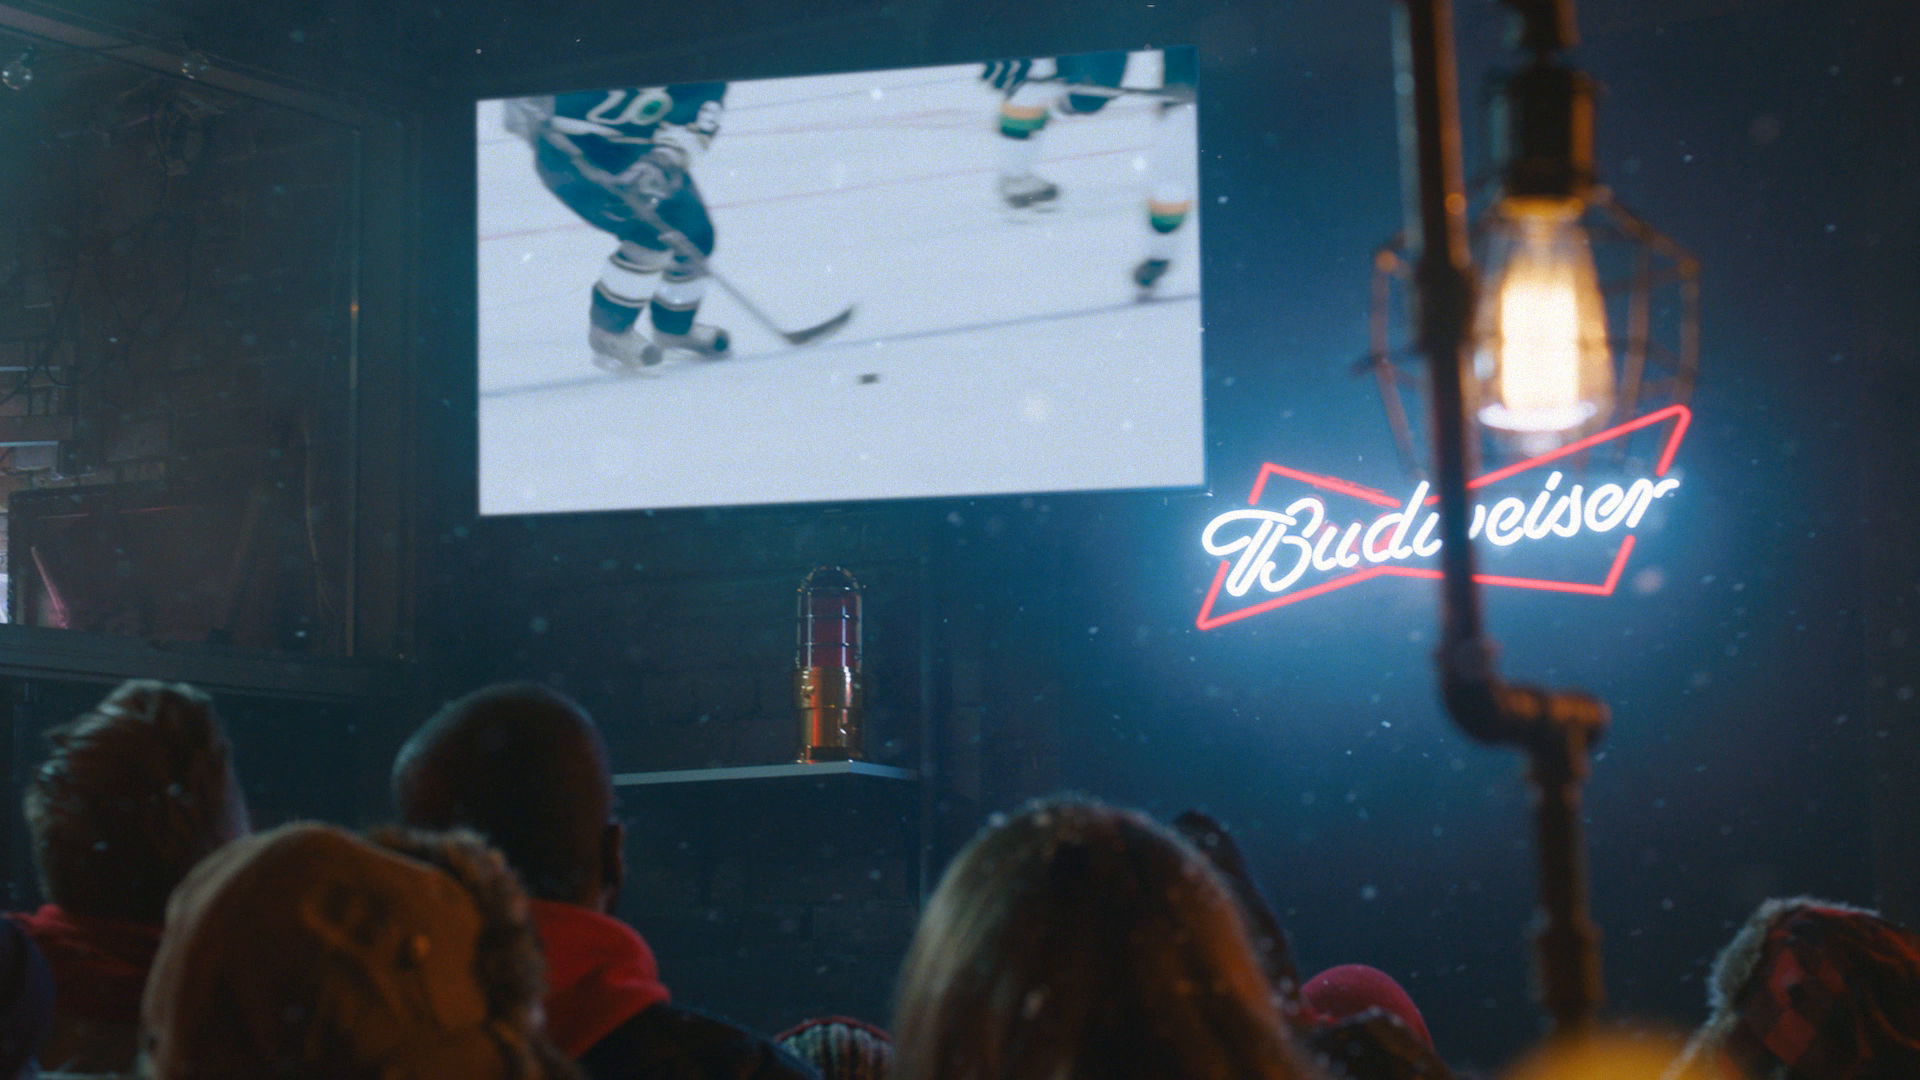 Thumbnail for Budweiser-Let it Shine